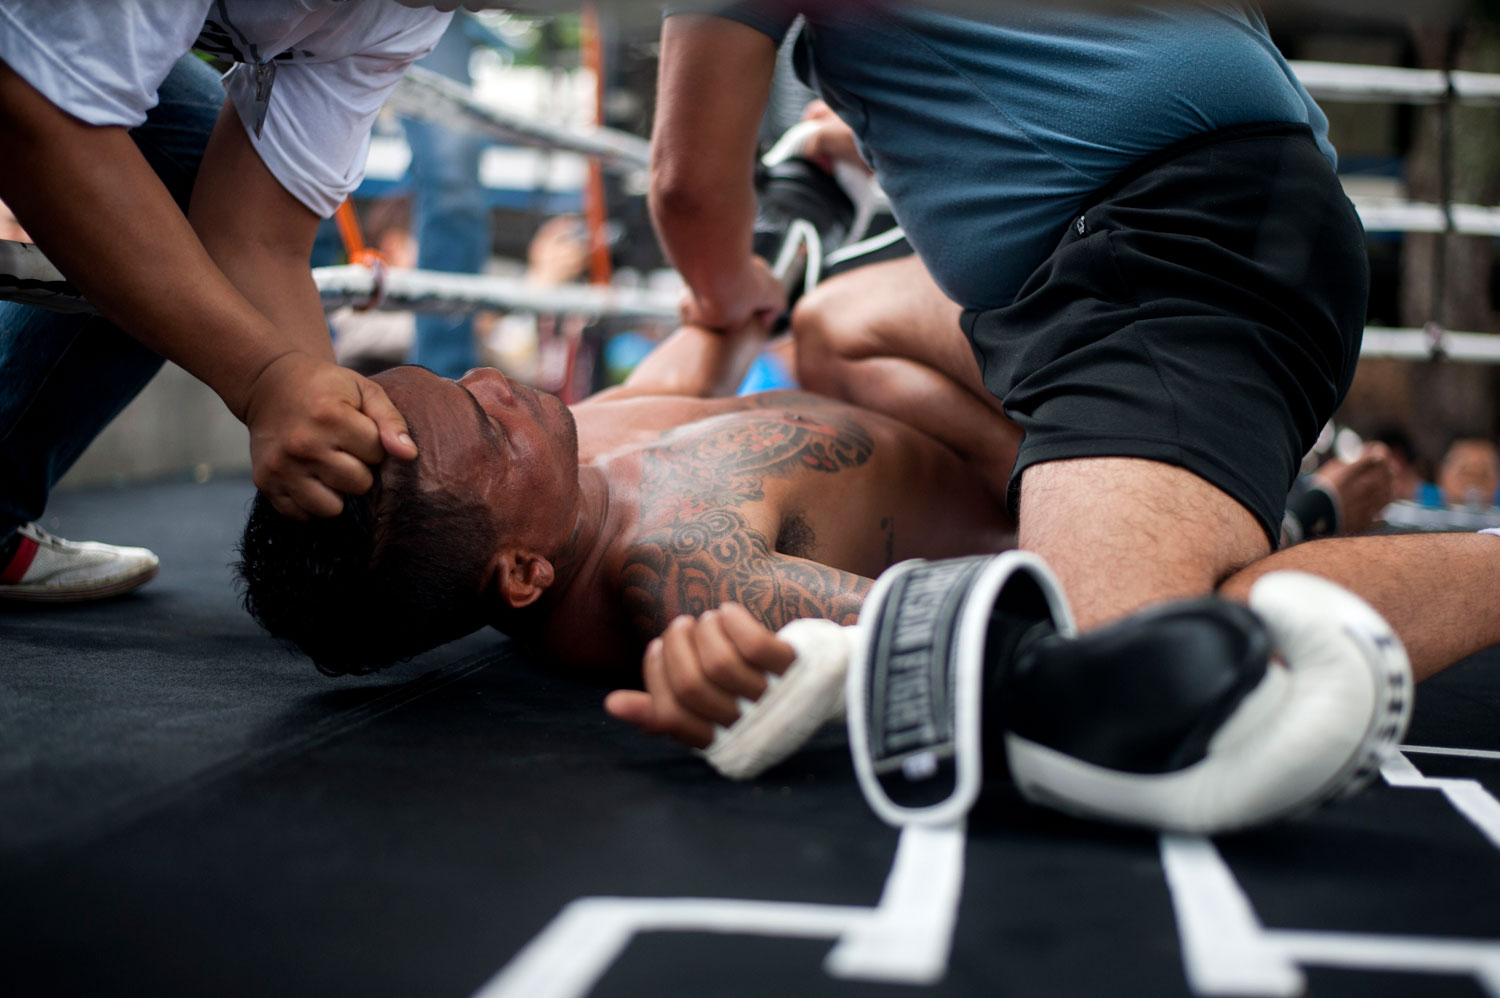 An inmate is helped after he falls to the floor during a Muay Thai fight at Klong Pai prison on July 12, 2014 in Nakhon Ratchasima, Thailand.